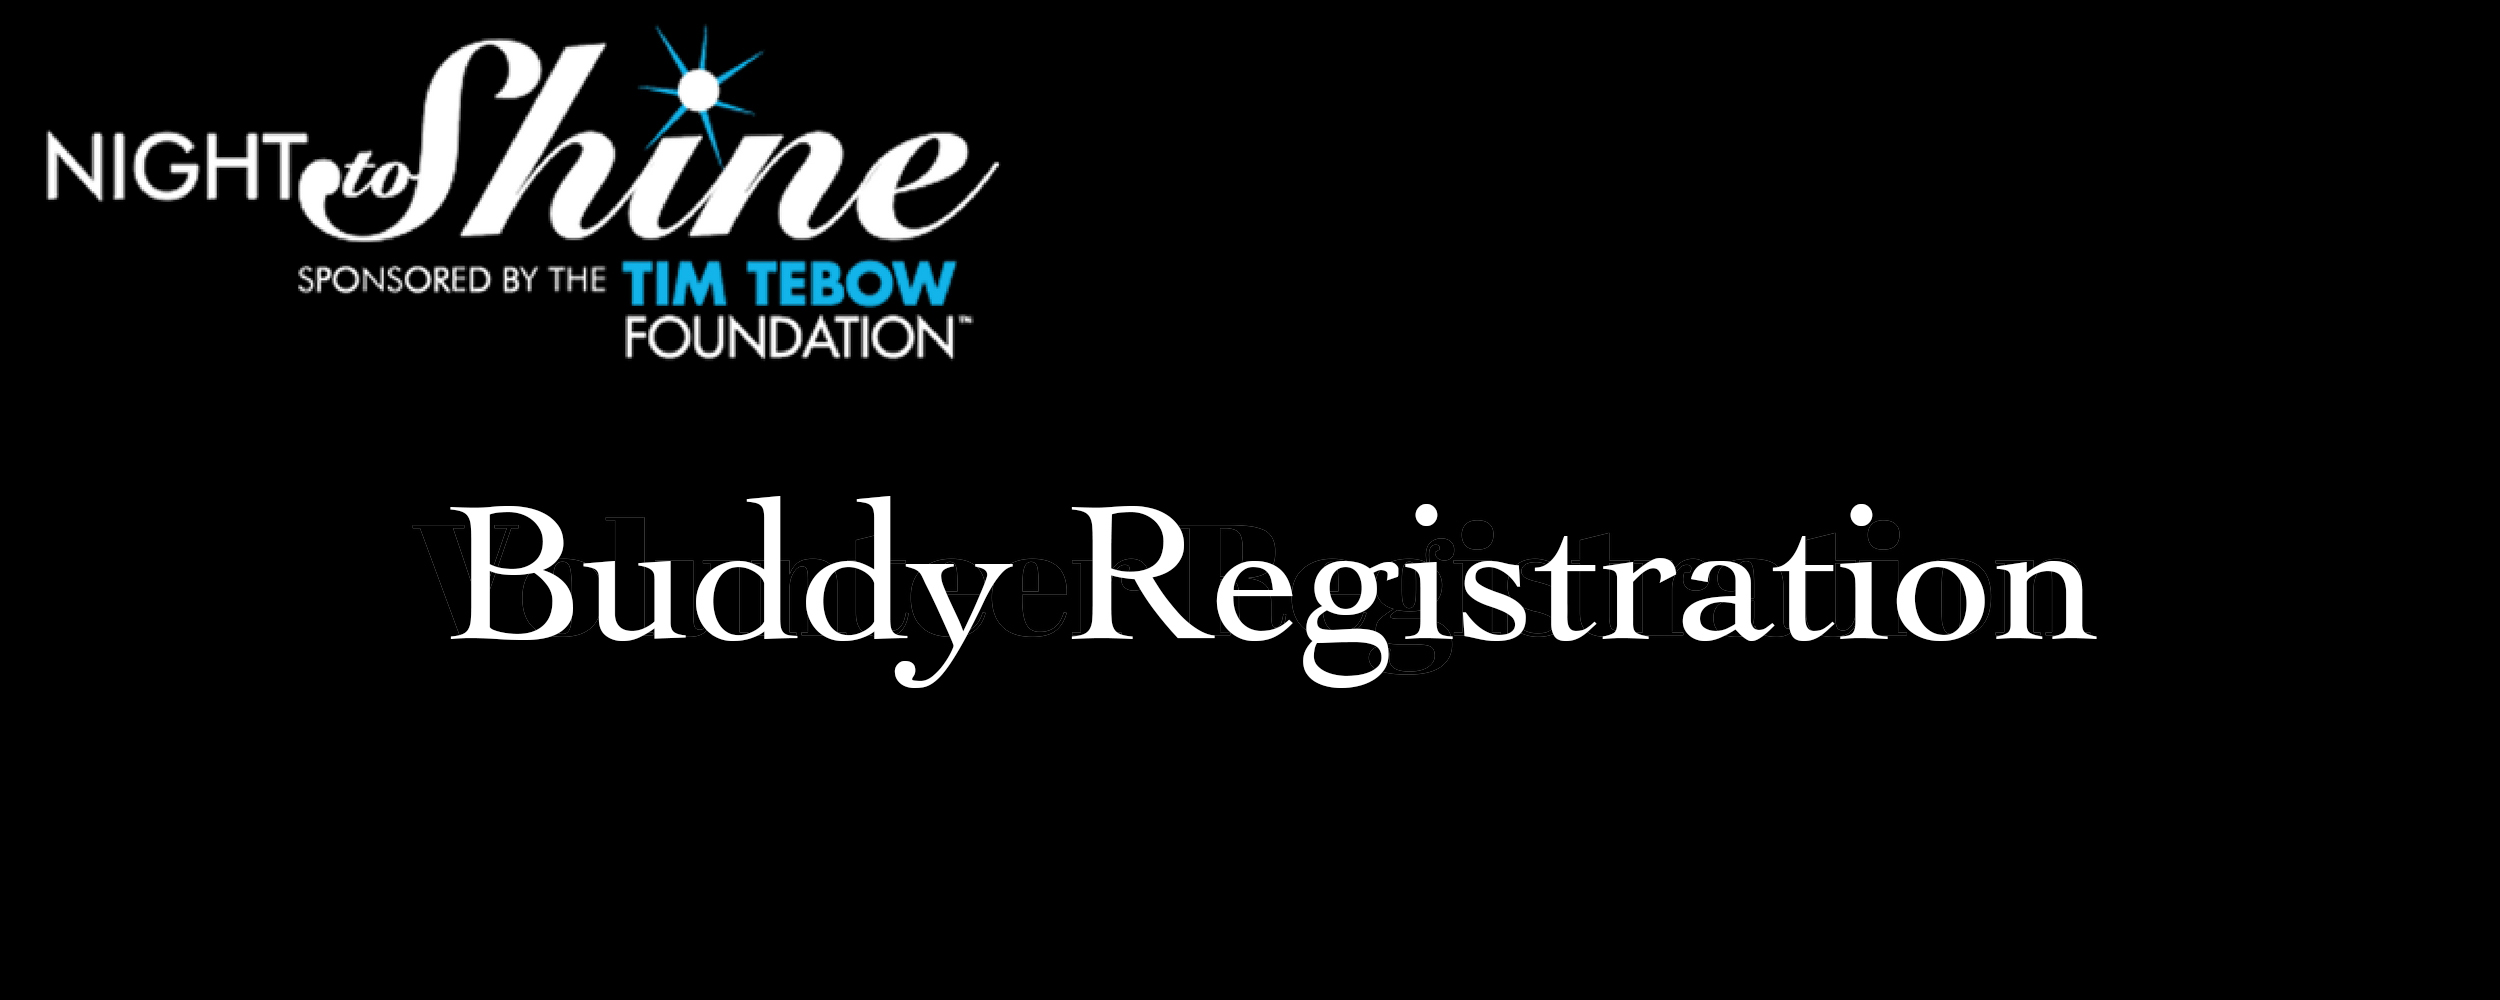 Night to shine Buddy registration.jpg